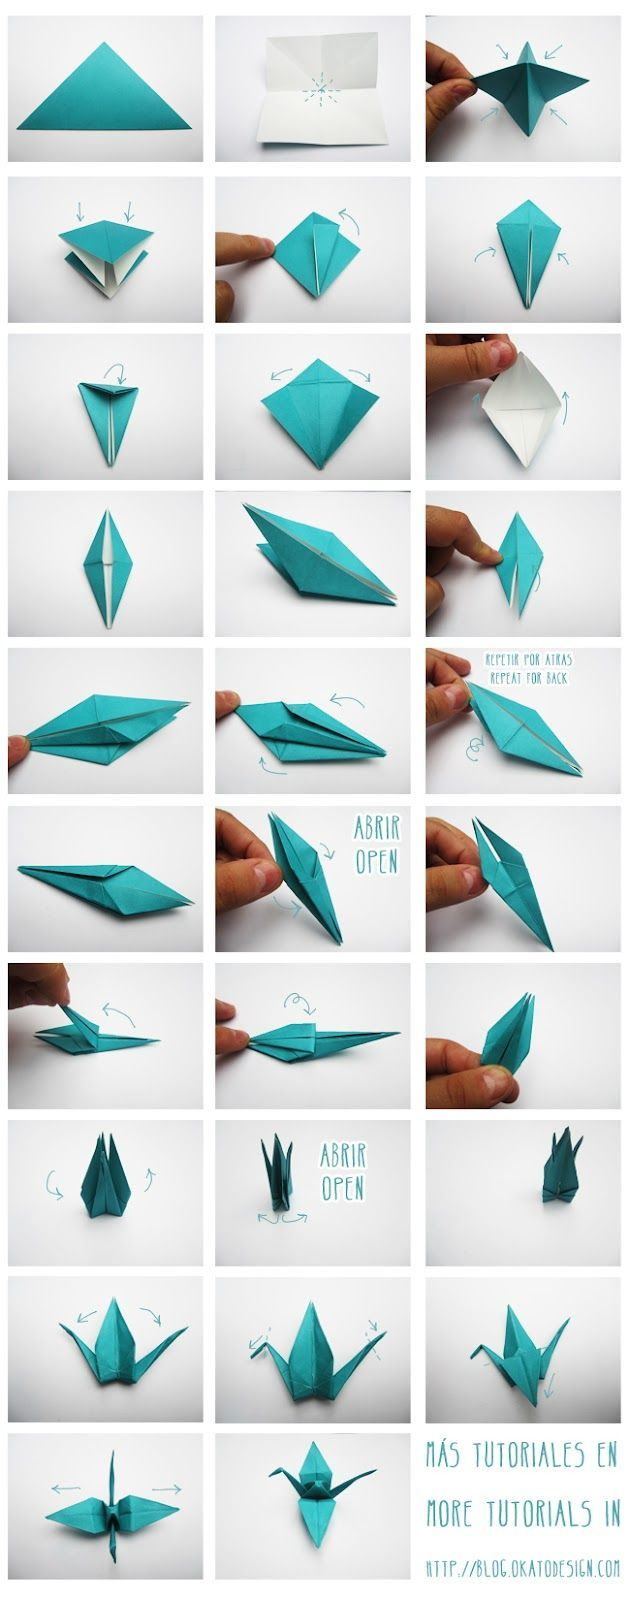 DIY & Crafts: Grullas de Origami